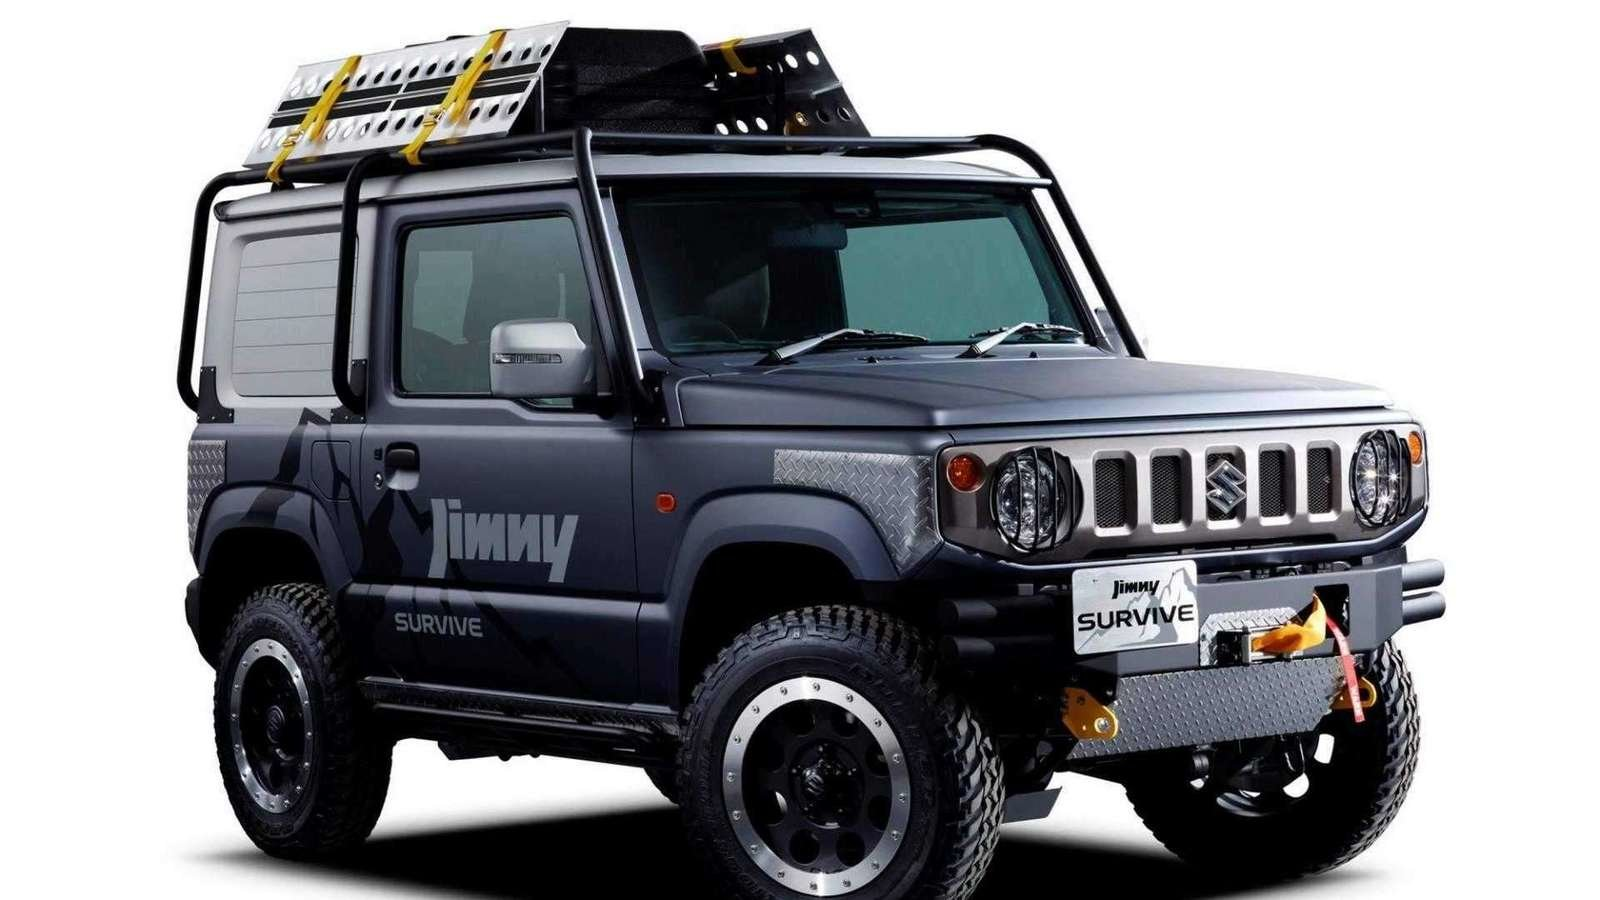 the suzuki jimny survive is japan 39 s take on the jeep. Black Bedroom Furniture Sets. Home Design Ideas